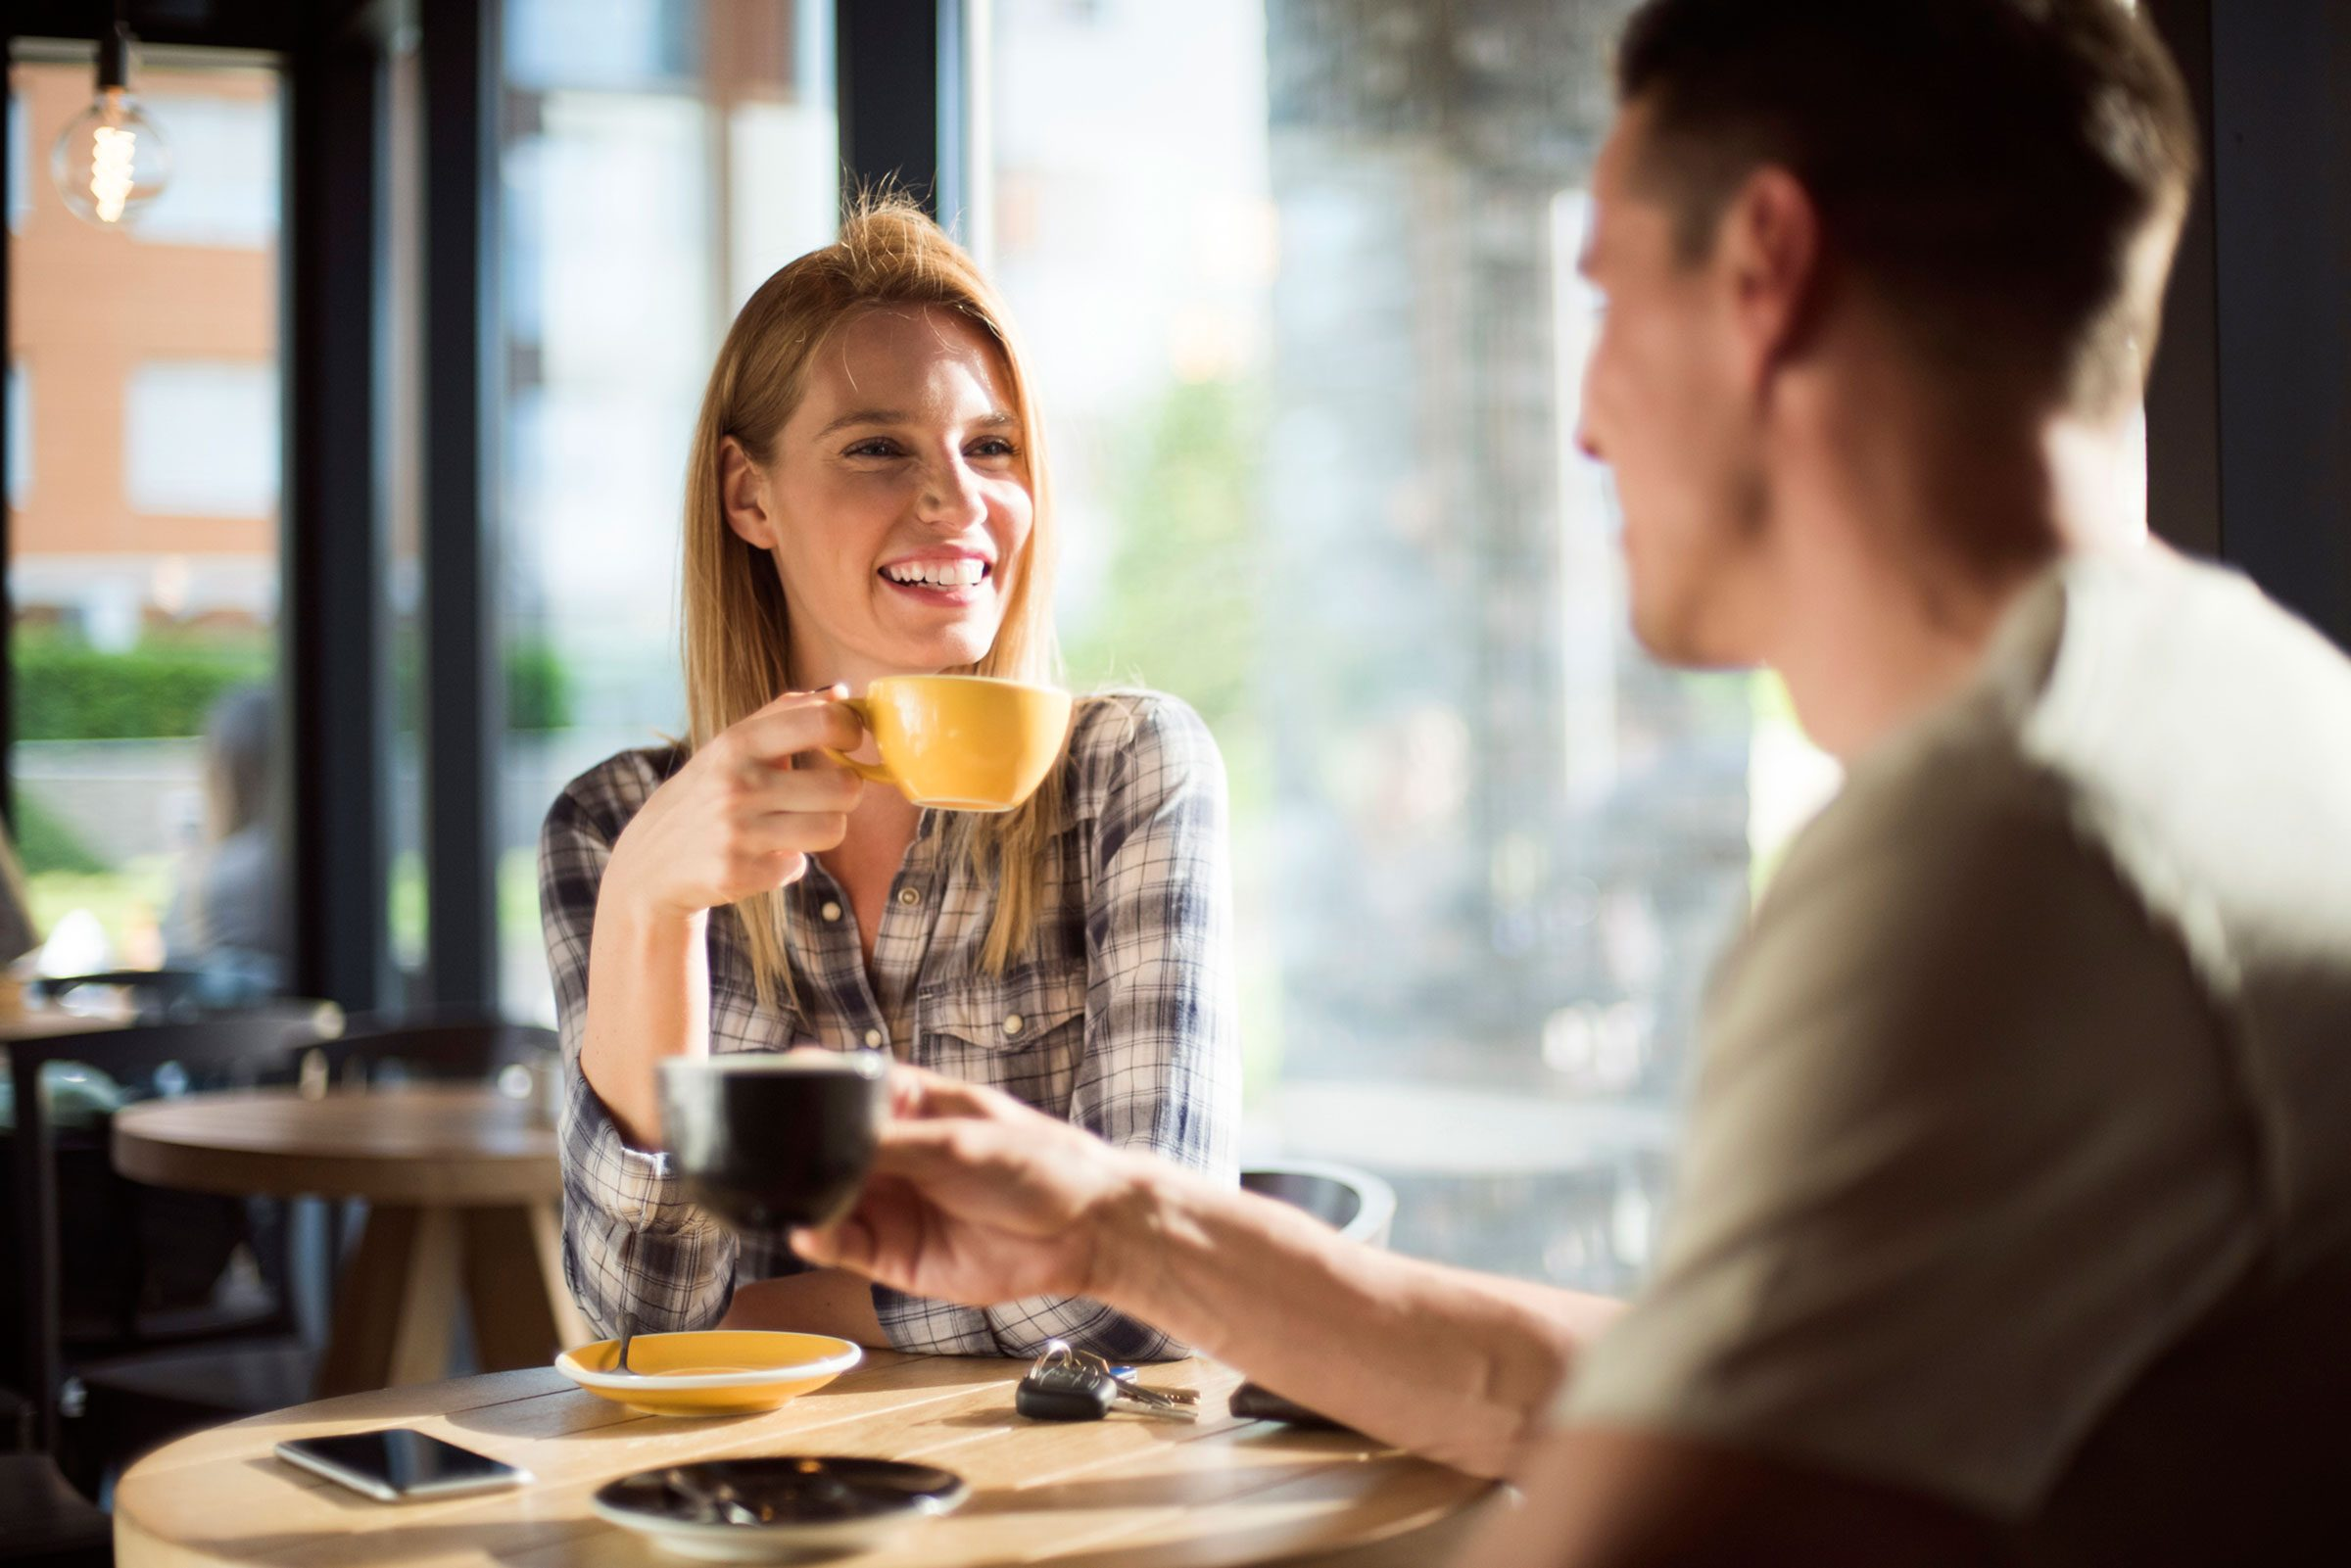 at what age should you start dating seriously